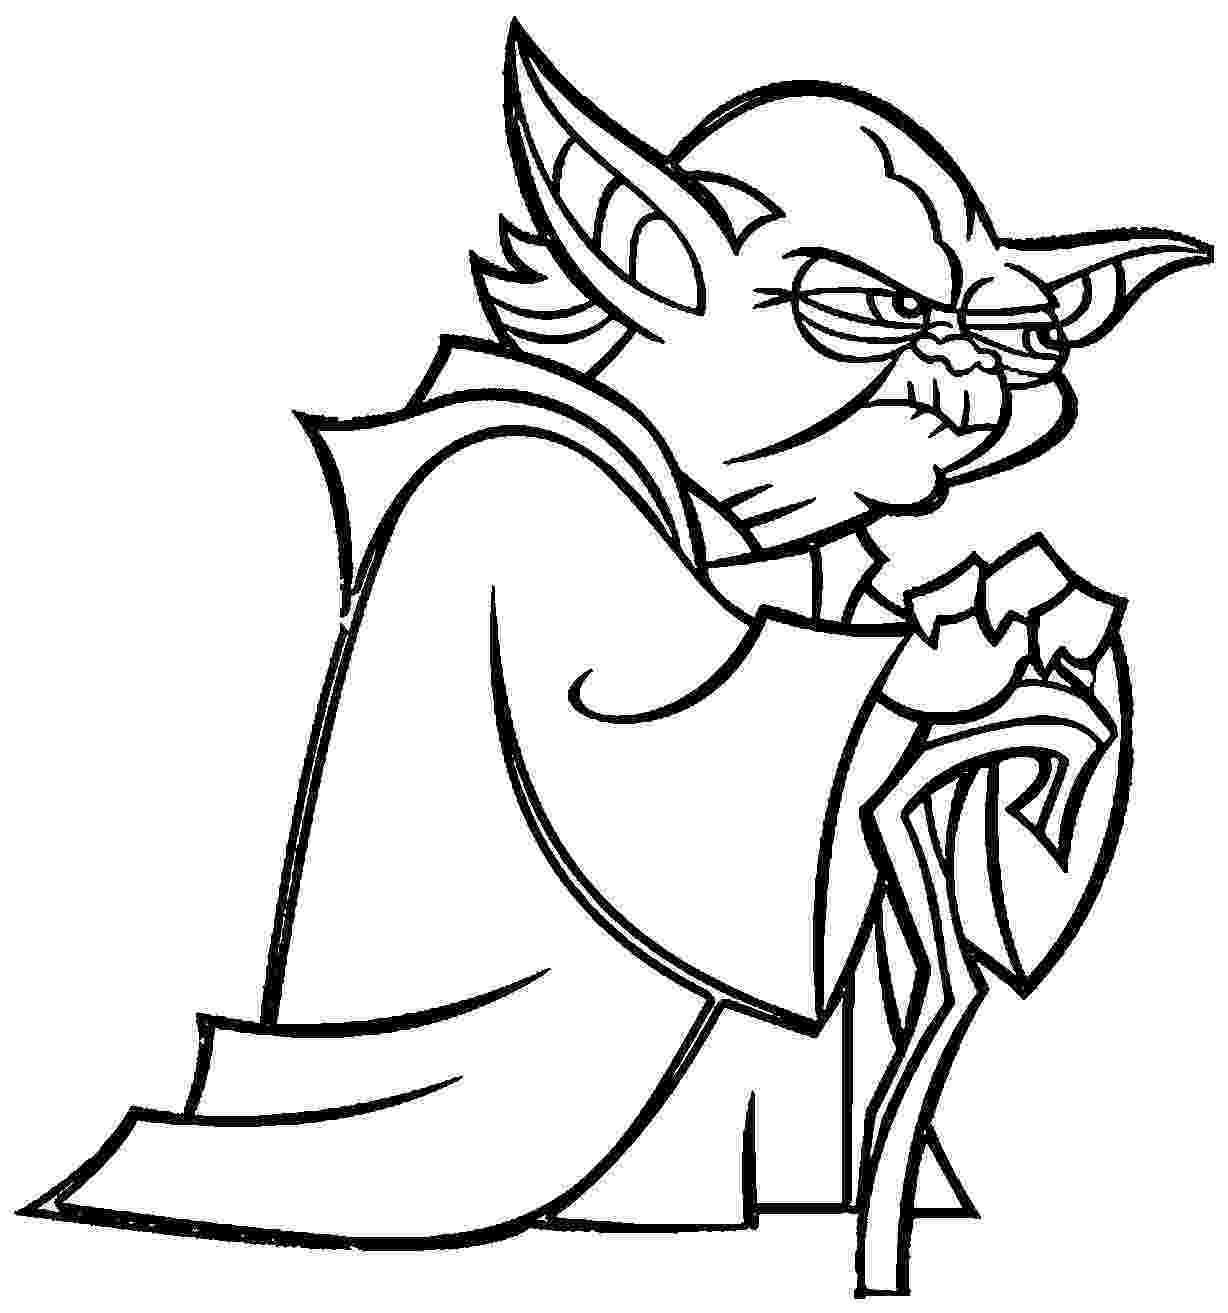 star wars free coloring pages star wars 7 coloring pages free download best star wars coloring pages wars star free